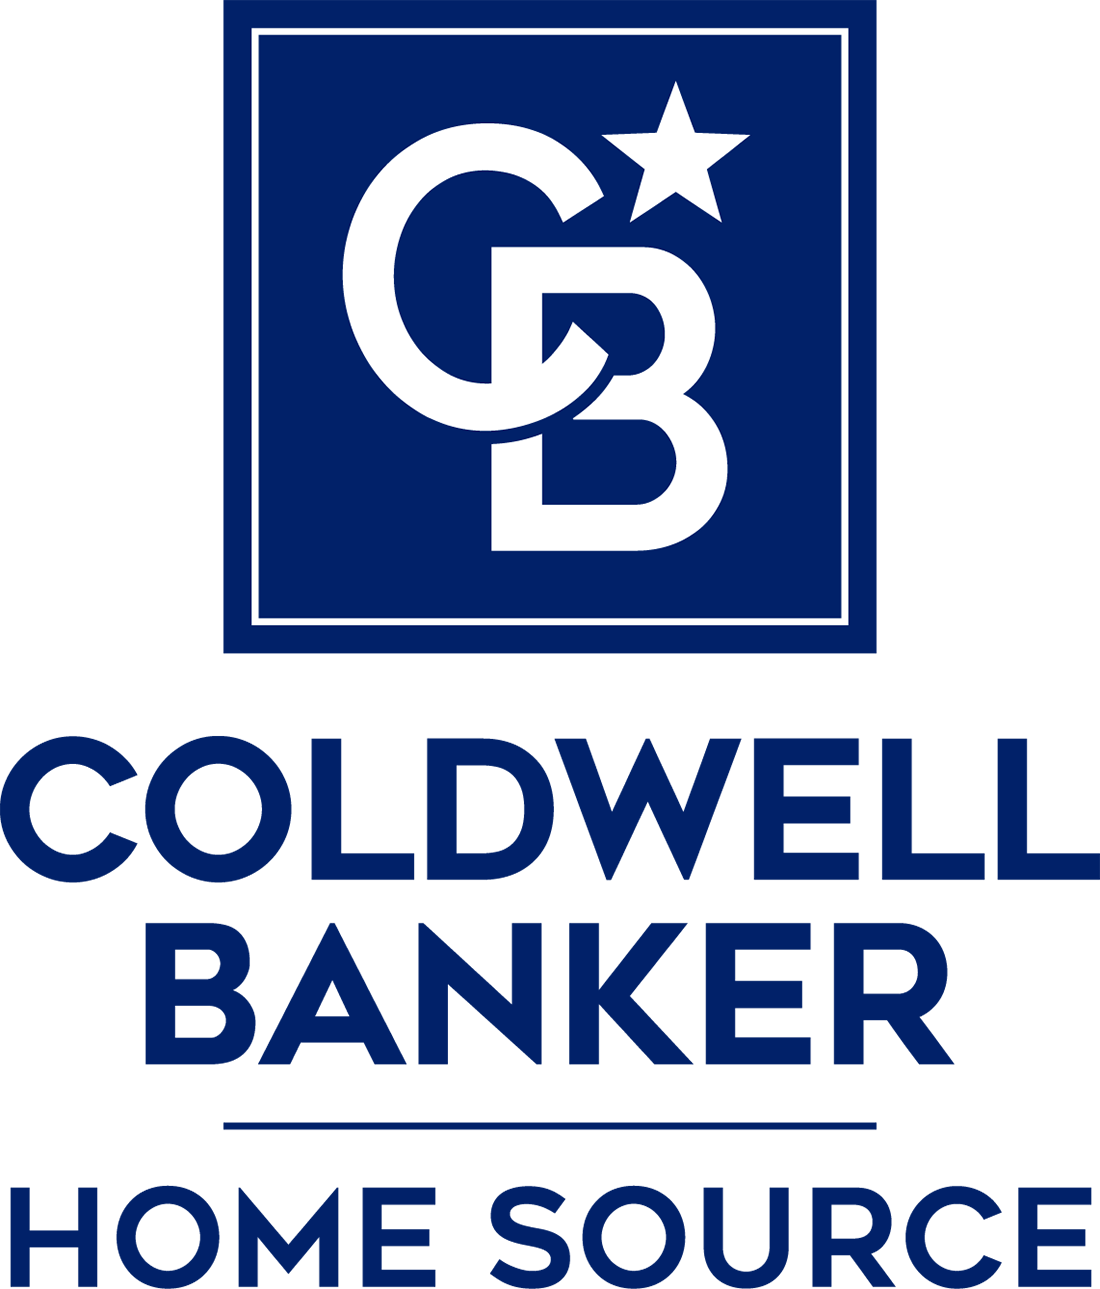 Mike Hale - Coldwell Banker Home Source Logo